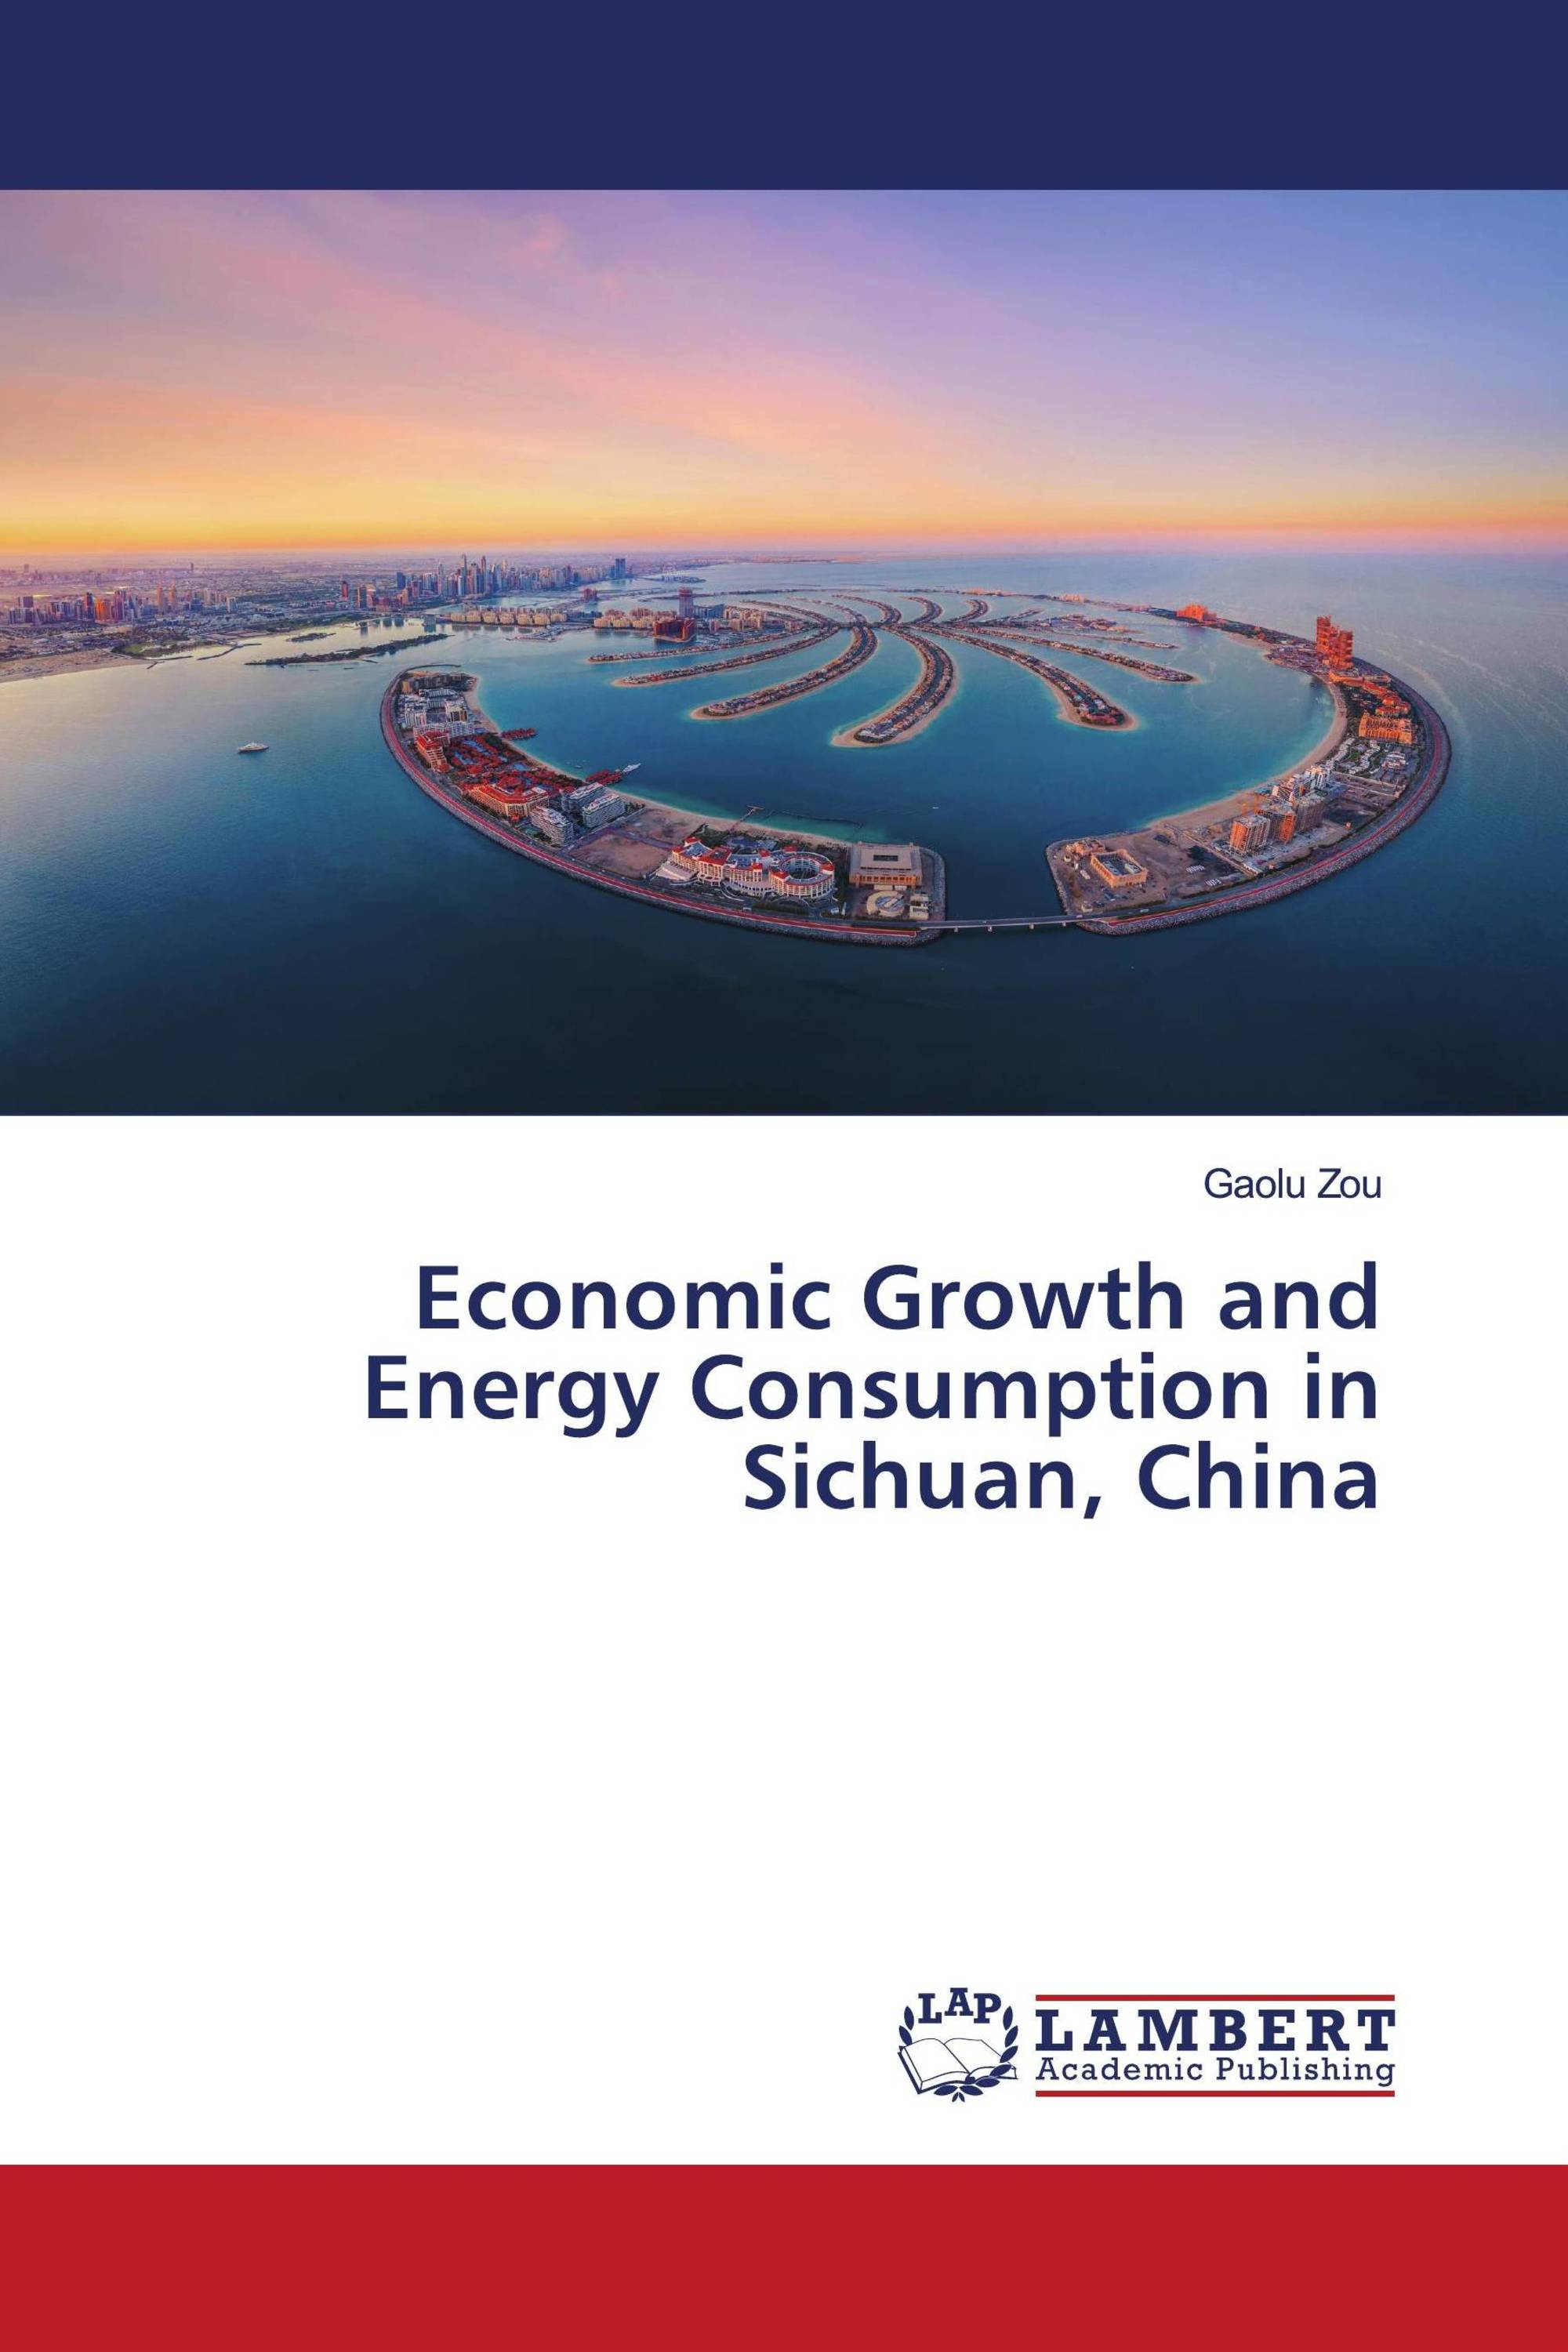 Economic Growth and Energy Consumption in Sichuan, China